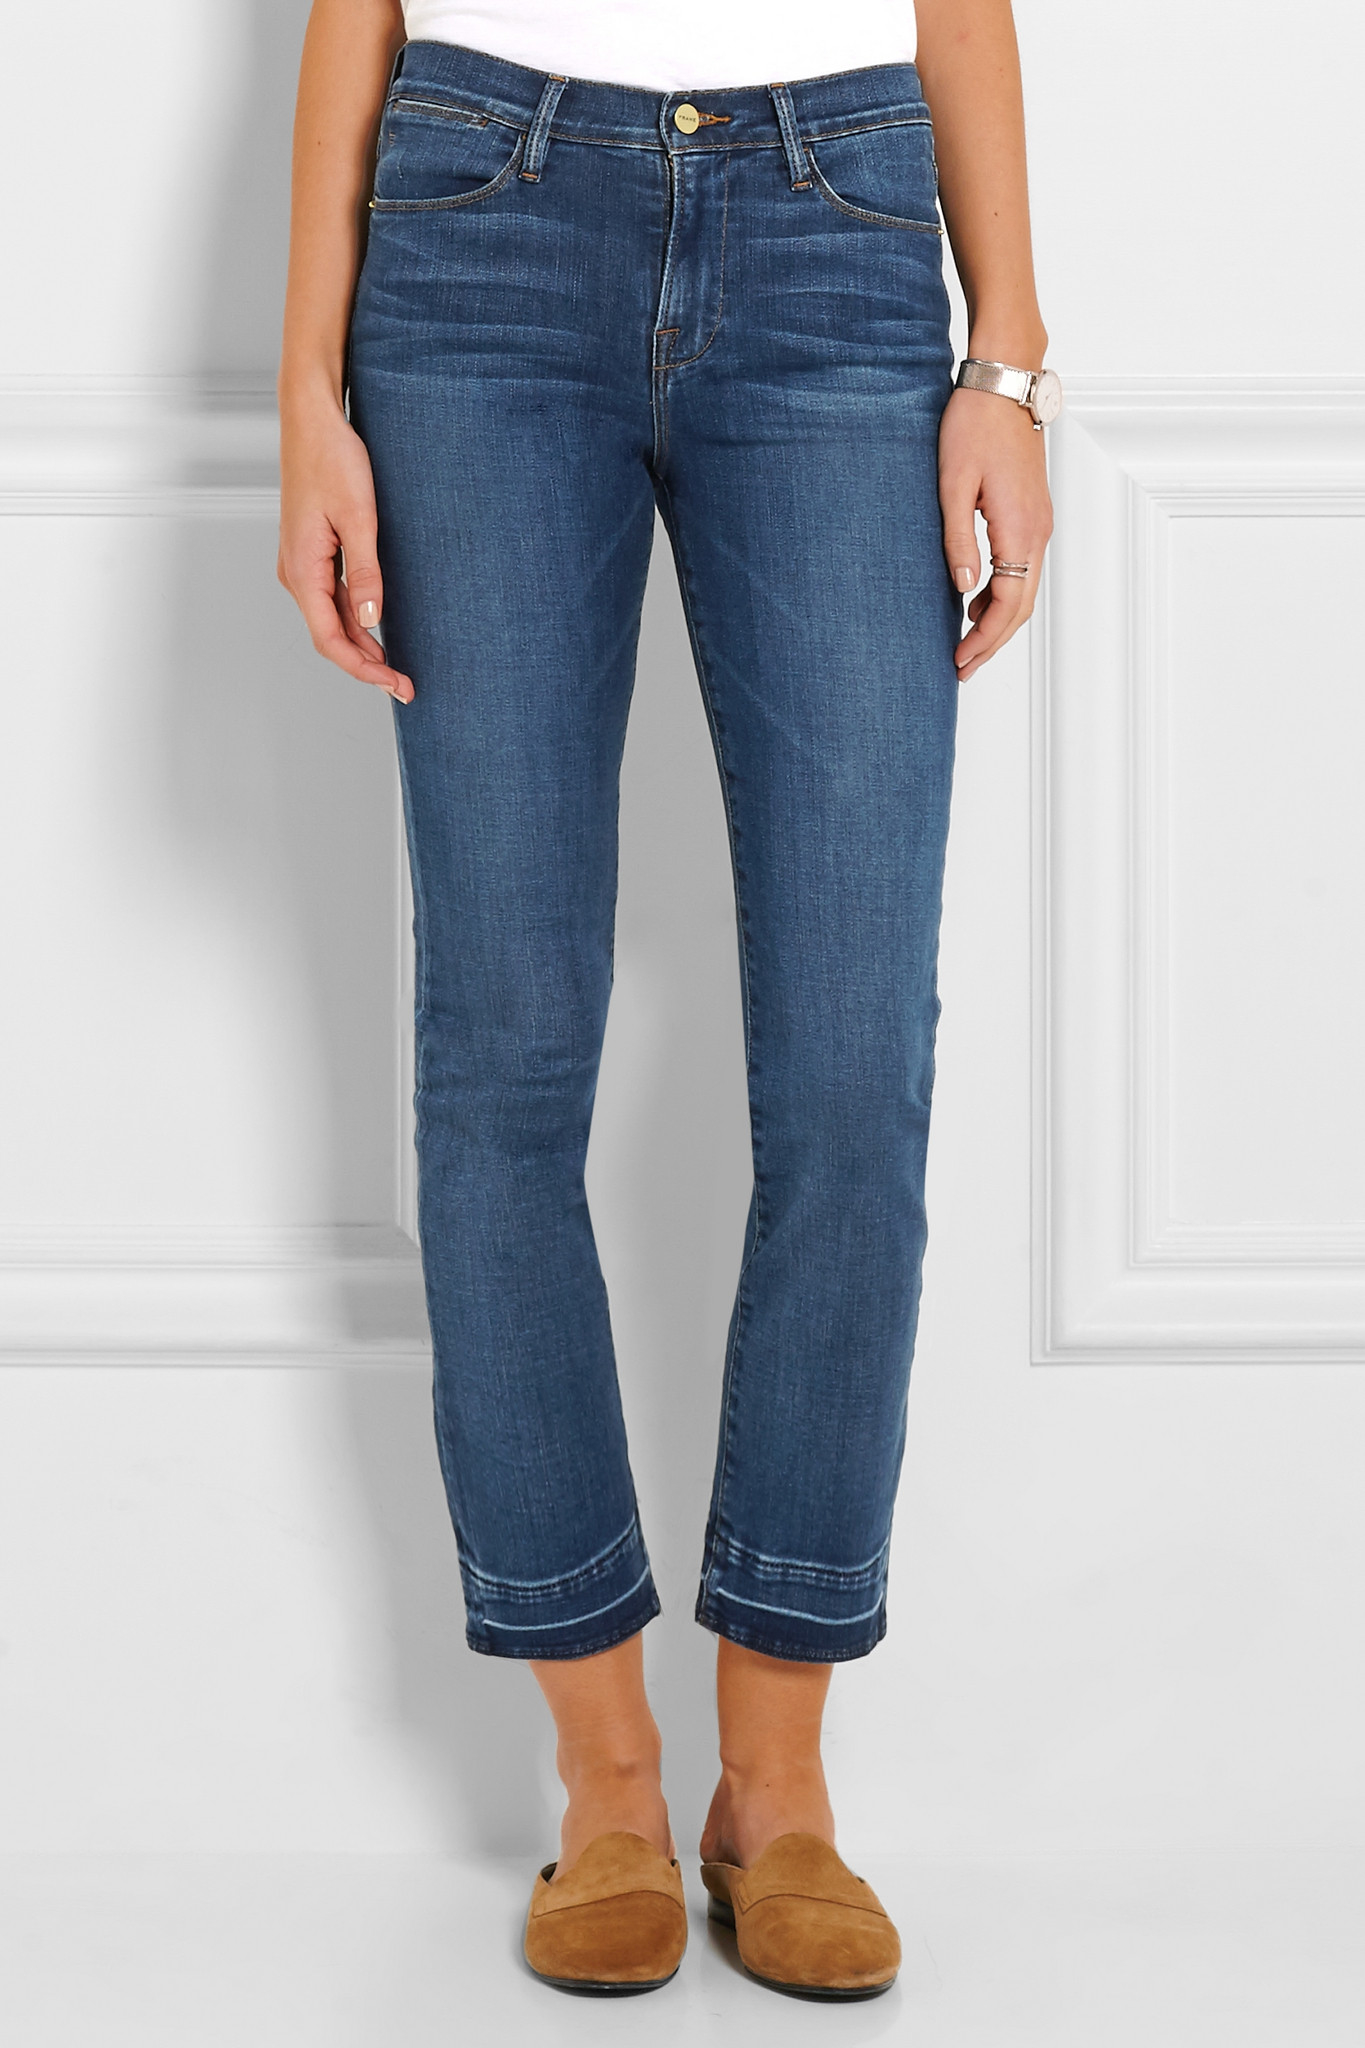 Low Price Online Le High Cropped Frayed Straight-leg Jeans - Mid denim Frame Denim Get Top-Rated Buy Cheap Professional JcoH2H